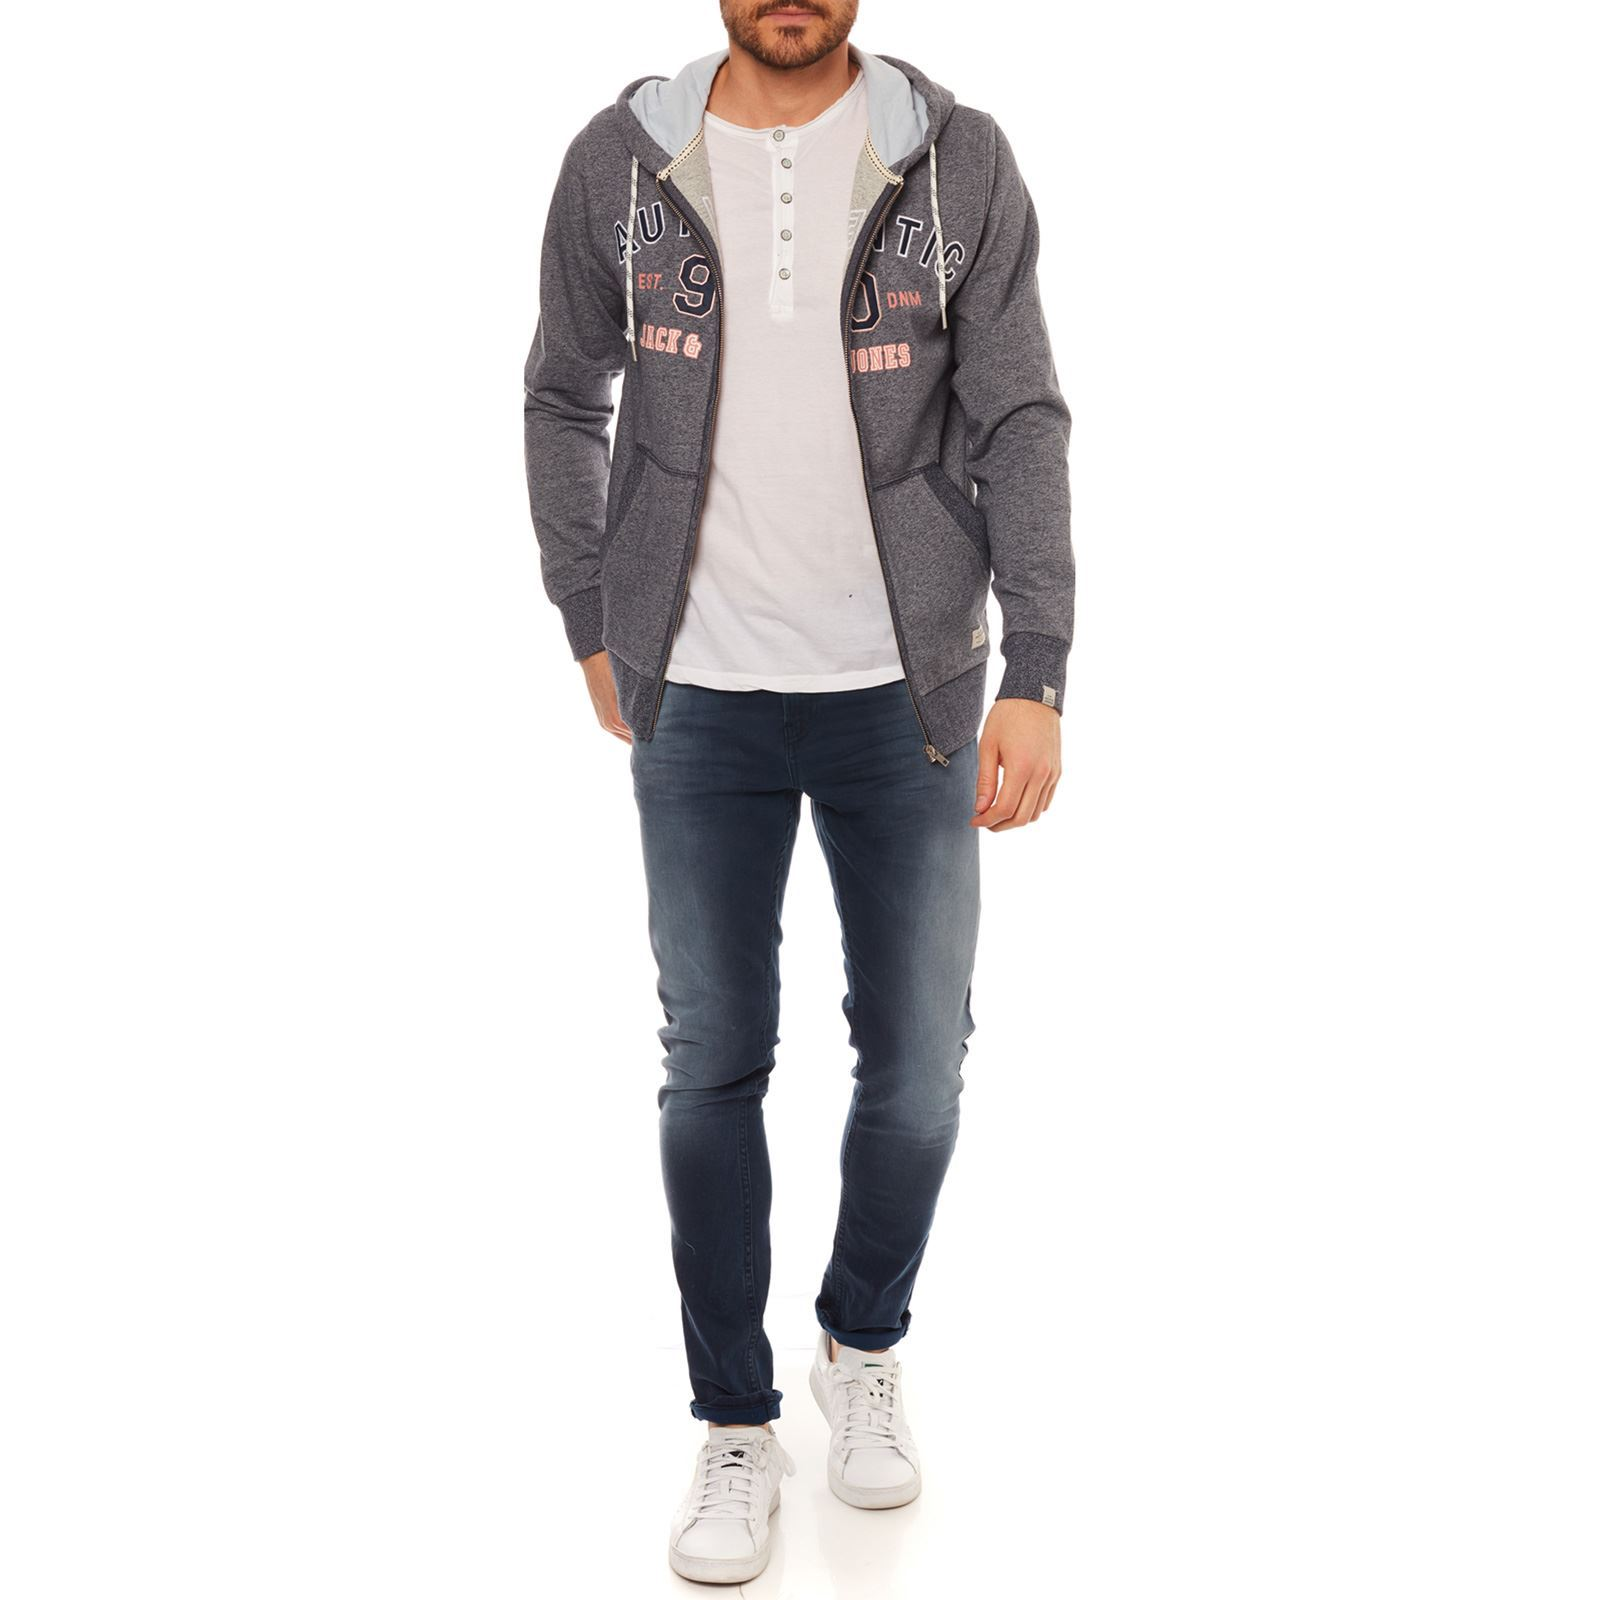 Jorlion Sweat Bleu Marine Capuche Jones amp; Jack À q4AEtAw